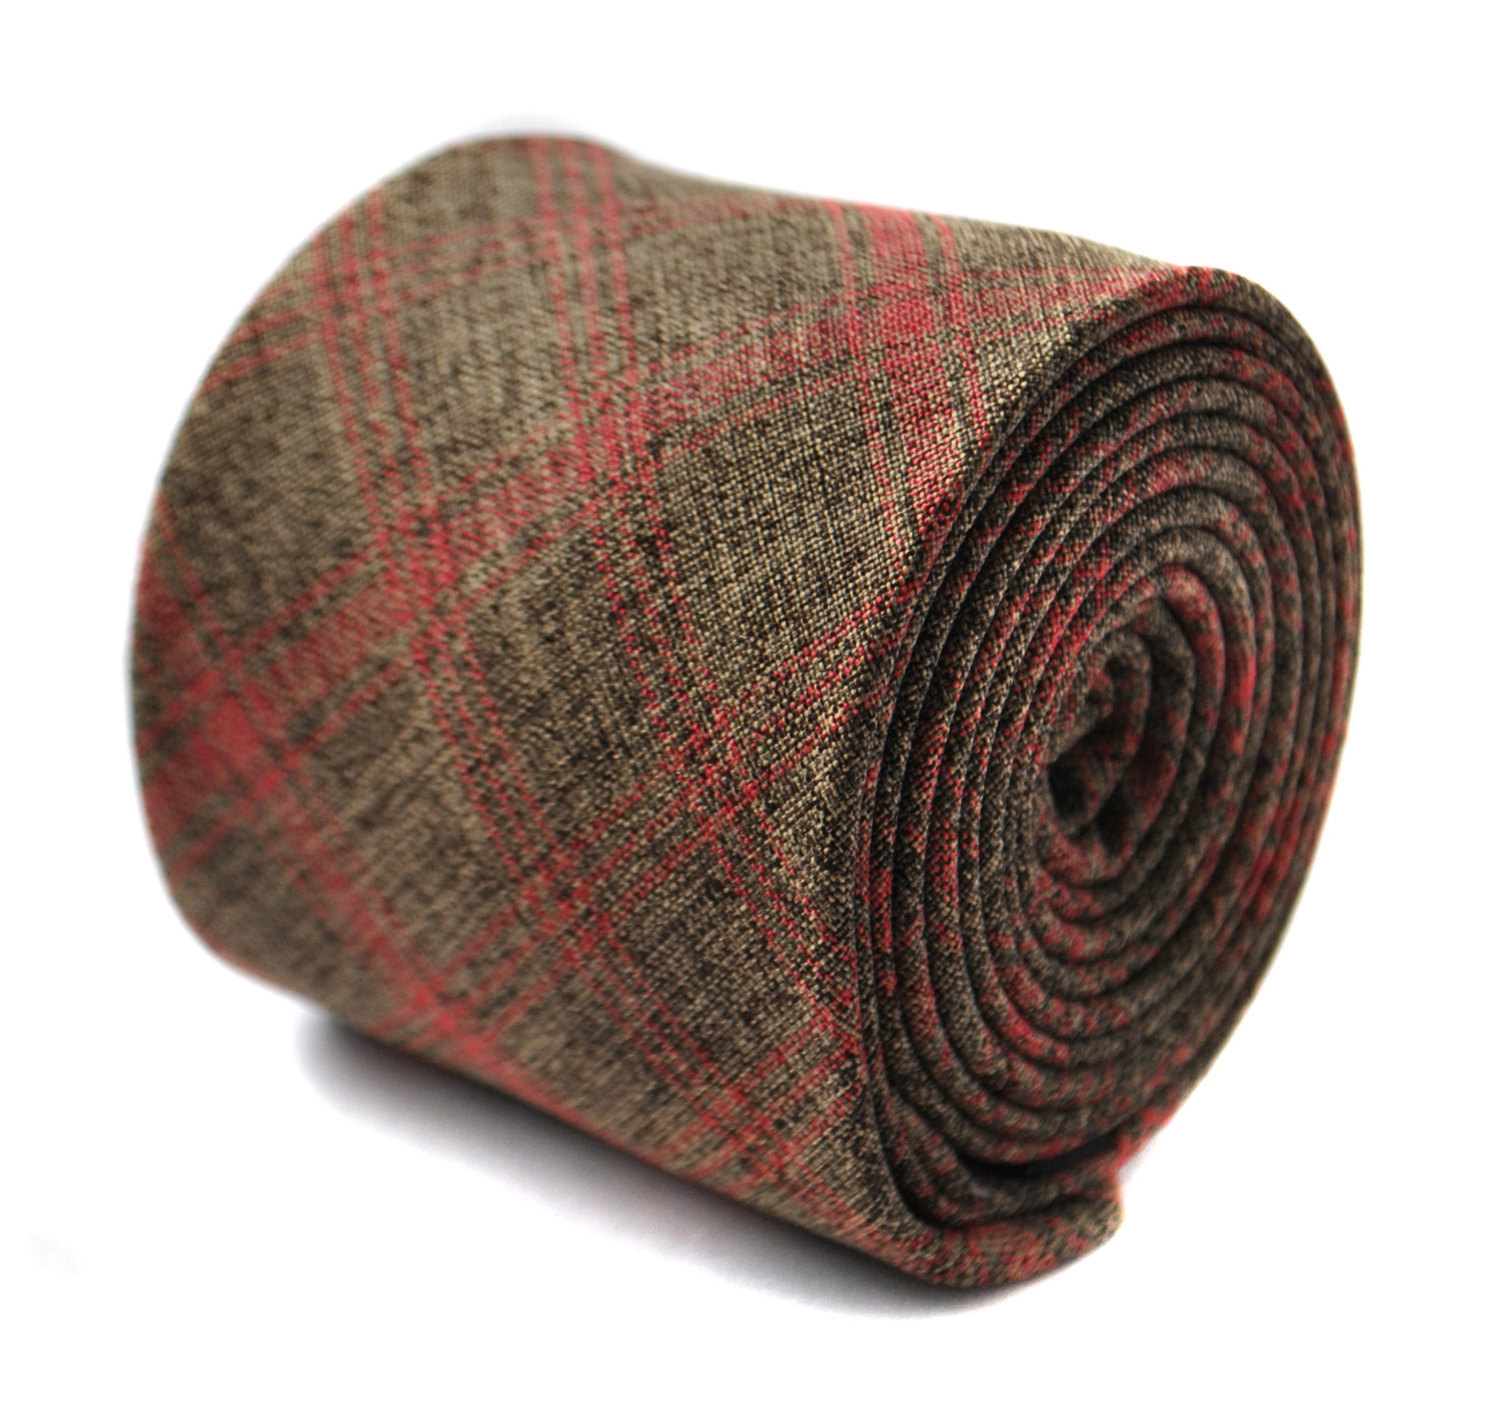 brown and red check linen tie 6.5cm by Frederick Thomas FT2014